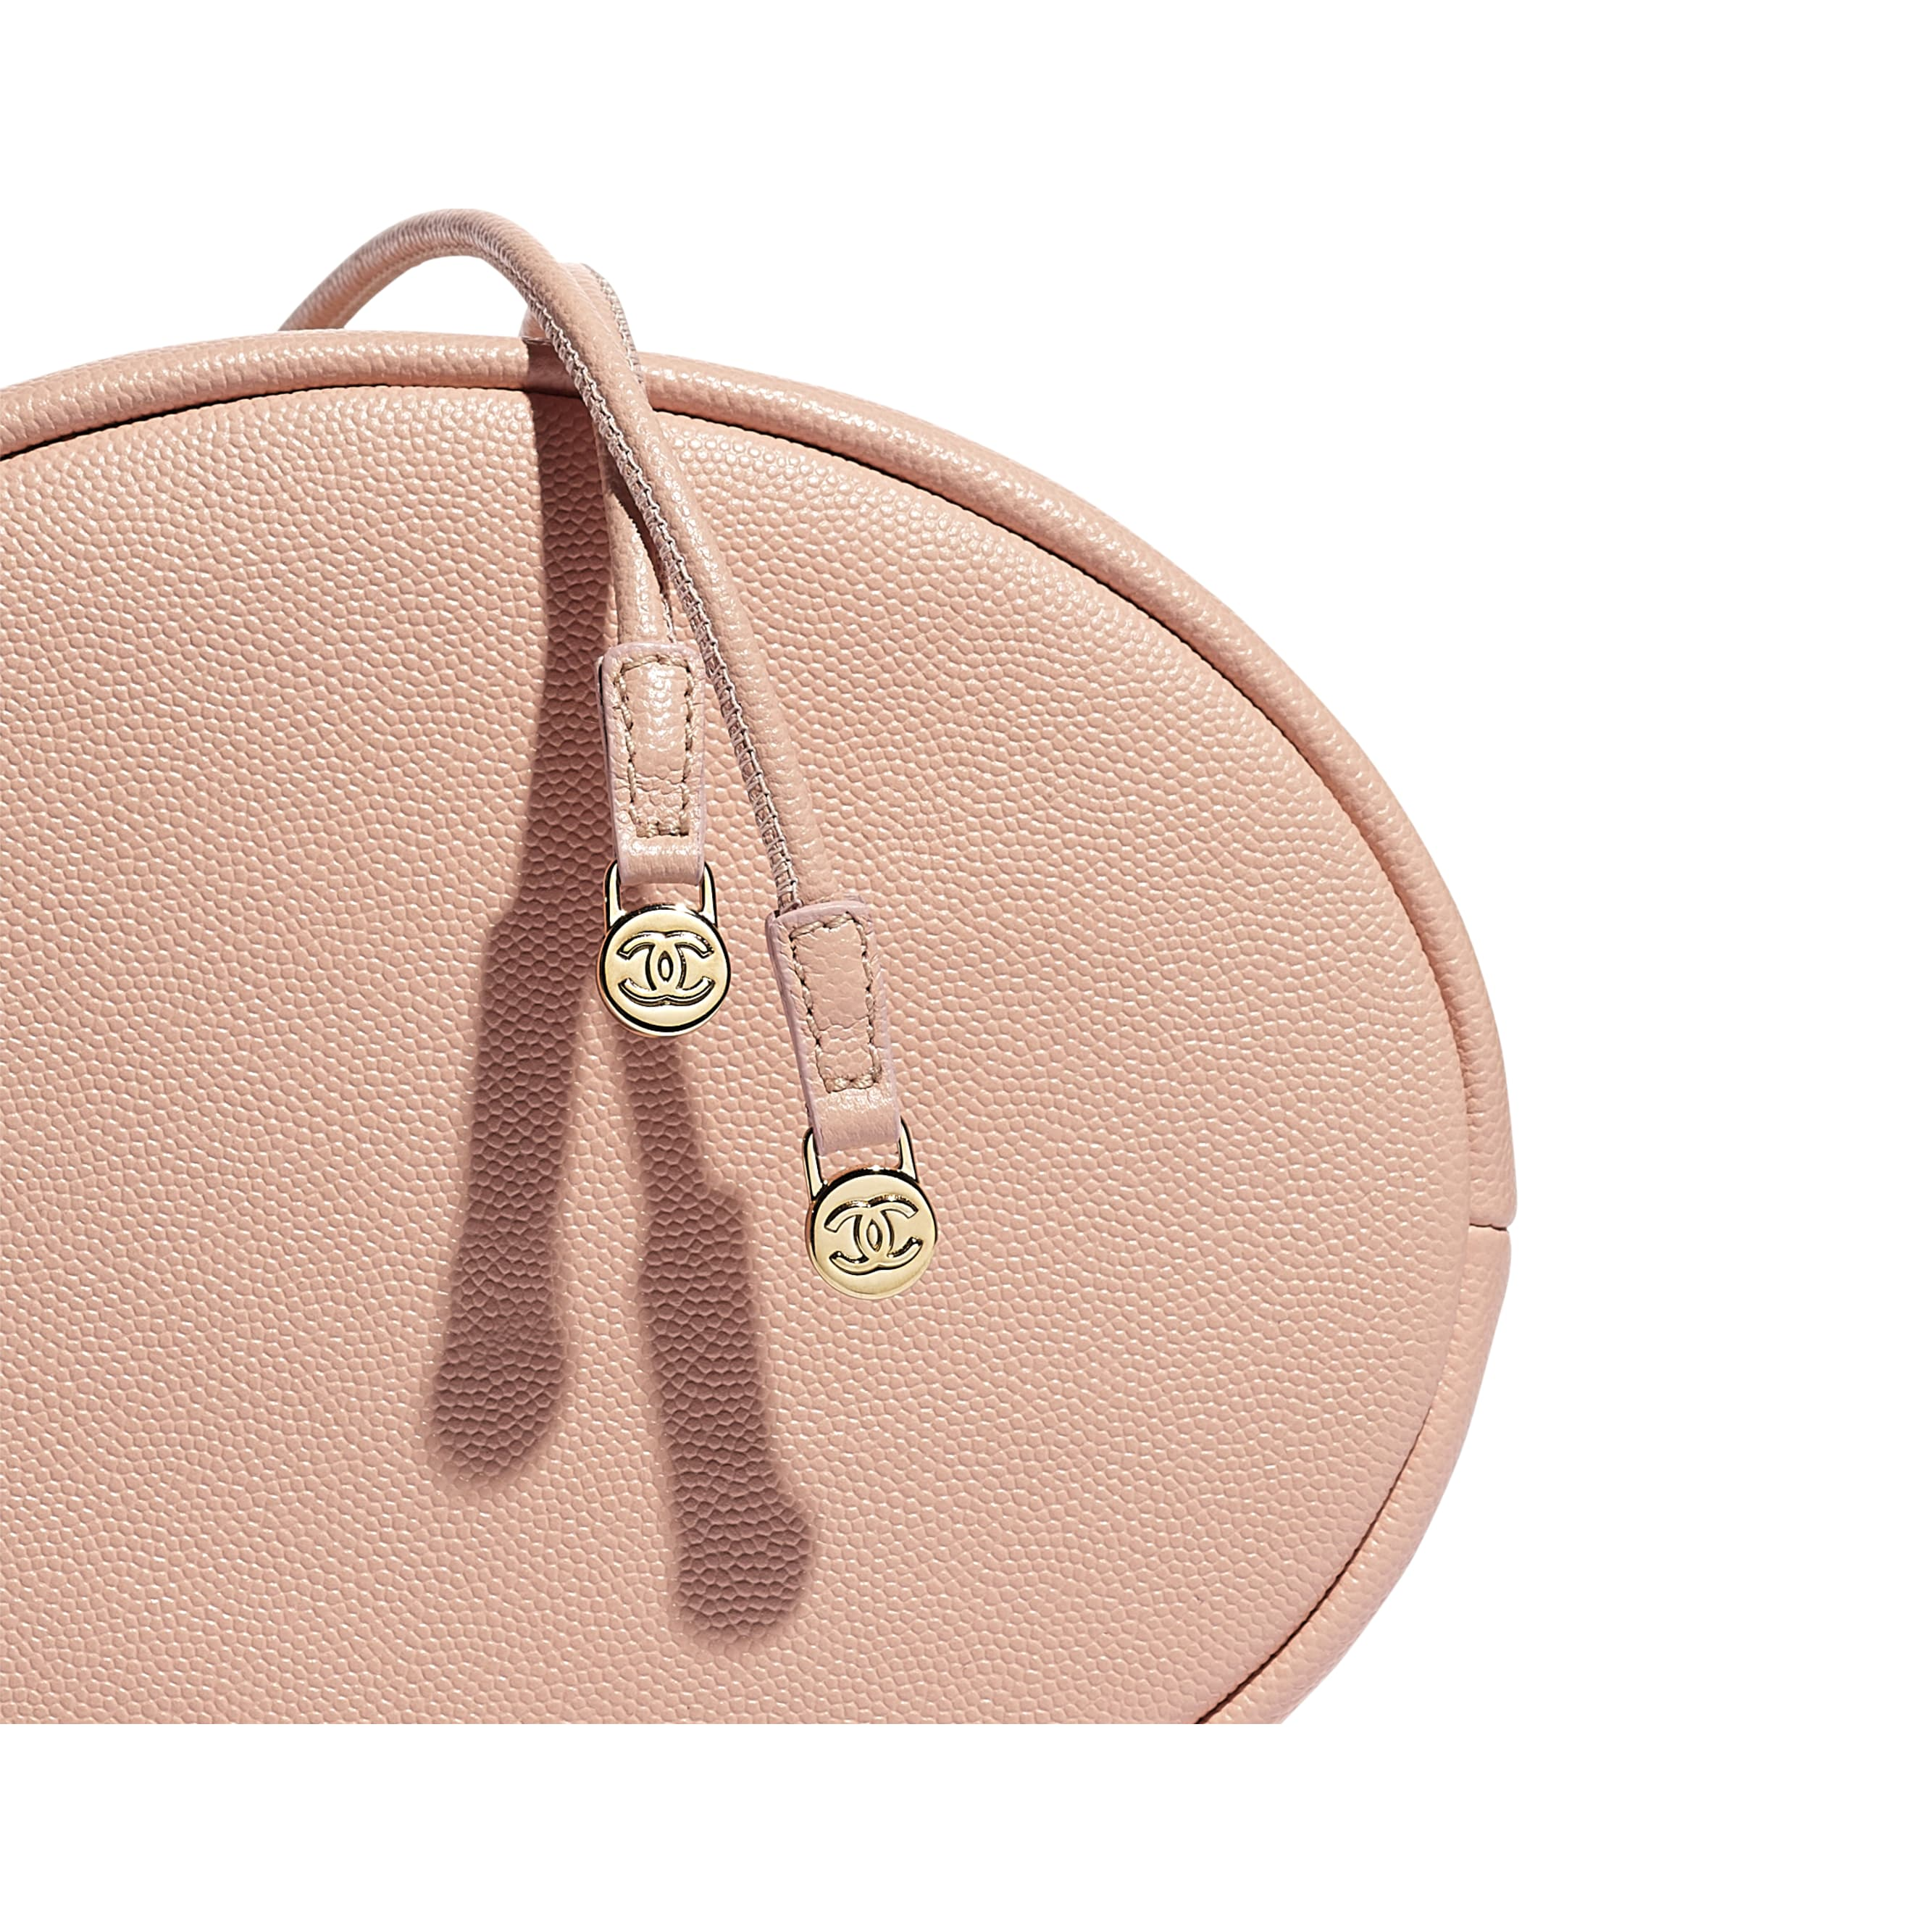 Small Drawstring Bag - Light Pink - Grained Calfskin, Studs & Gold-Tone Metal - CHANEL - Extra view - see standard sized version